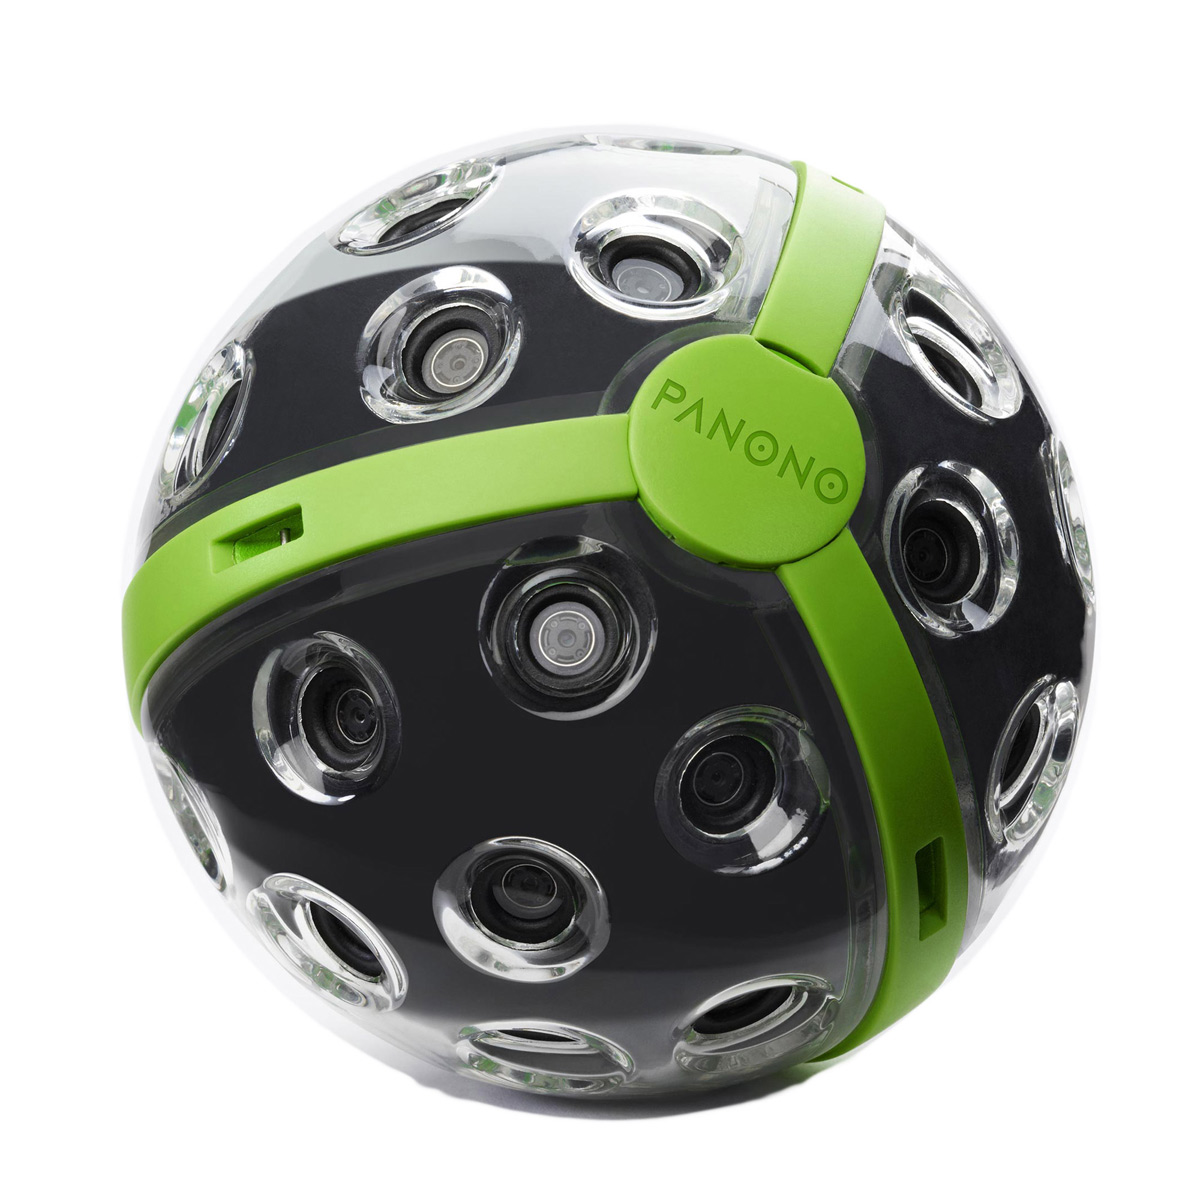 360° Panono Throwing Camera: Every new picture costs money from 1st September